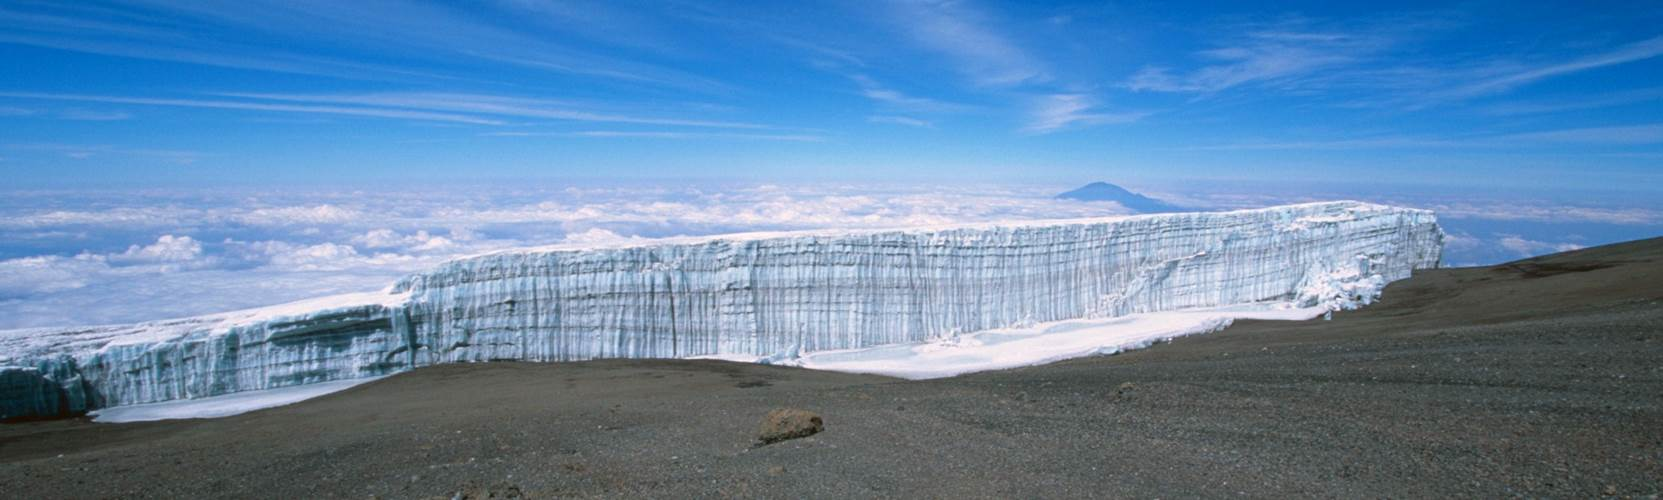 Mount Kilimanjaro - summit glacier